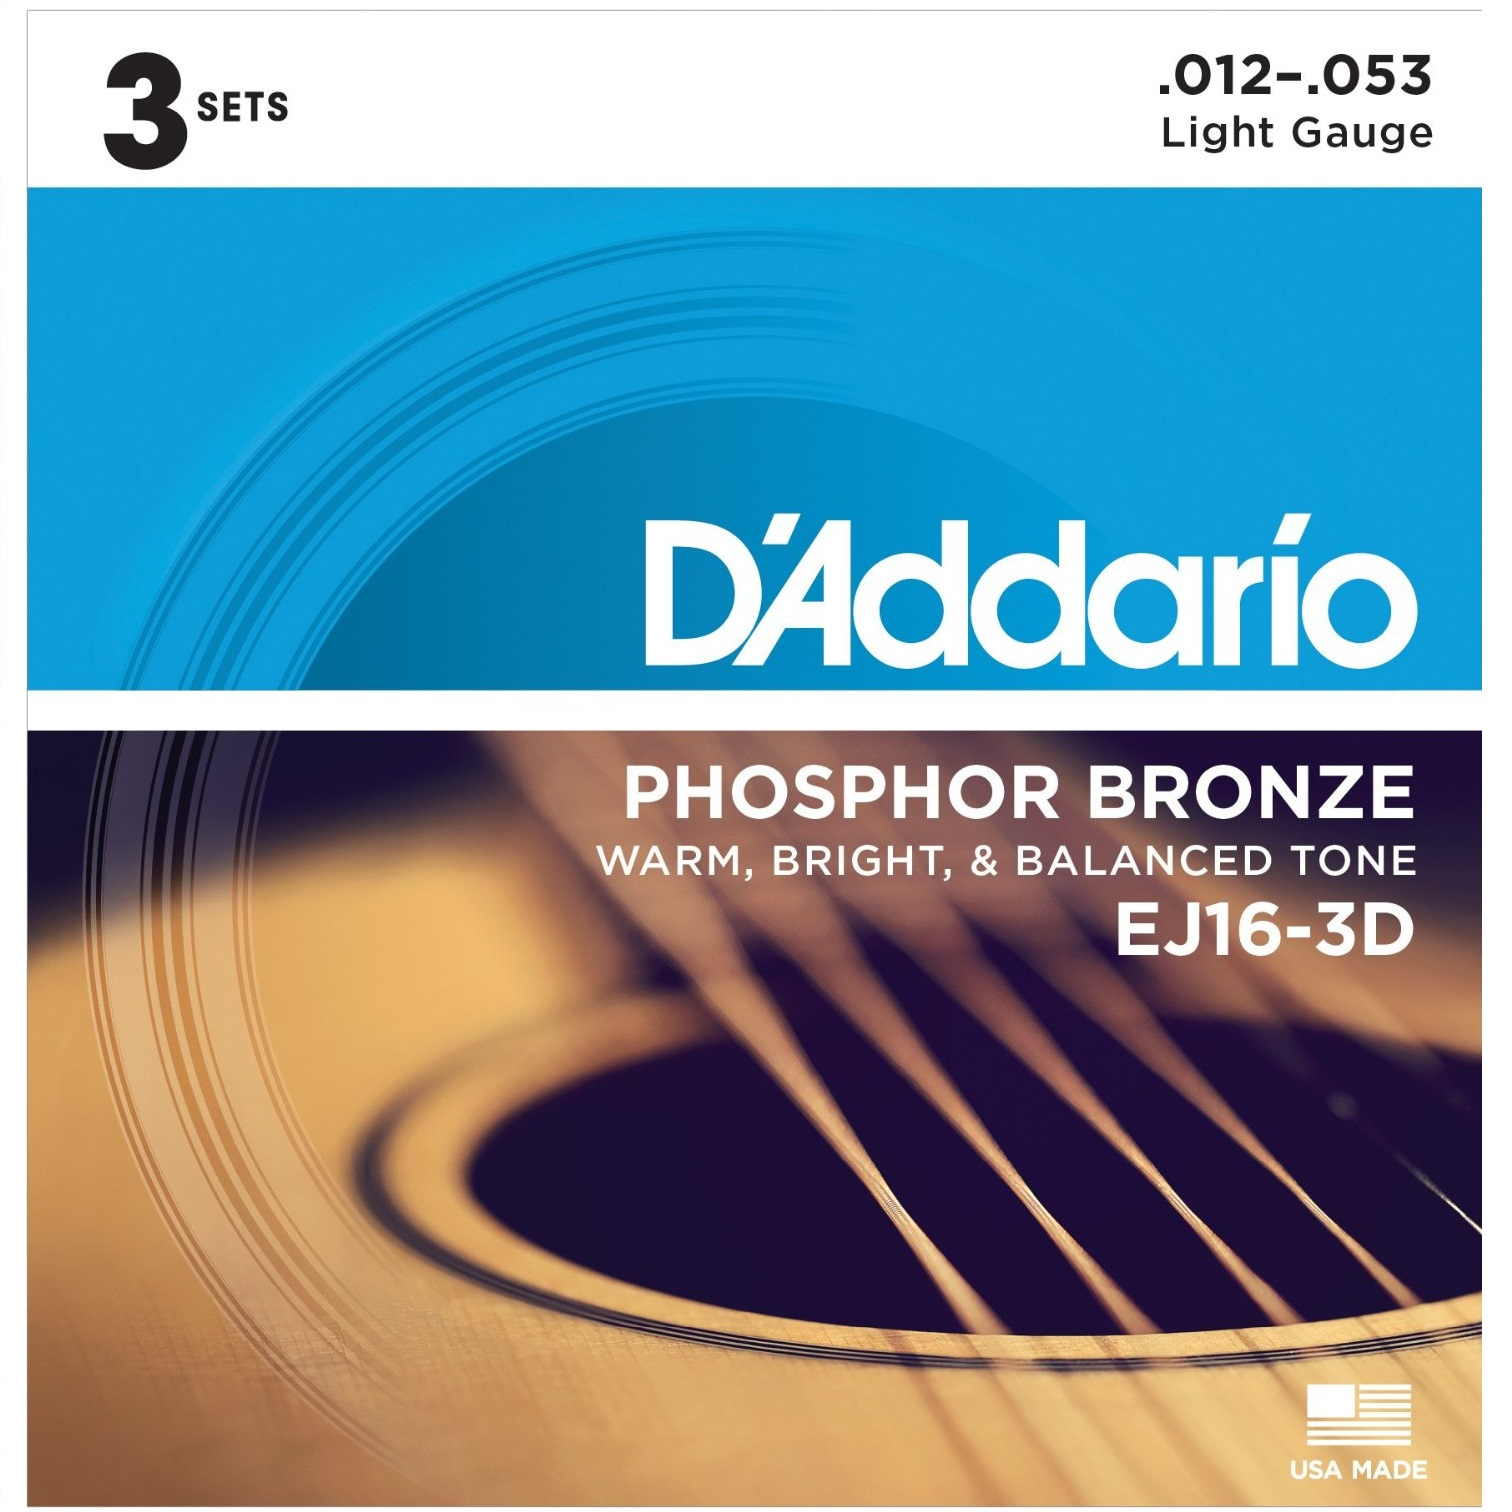 D'Addario Phosphor Bronze Acoustic Guitar Strings – Available in 10 Different Styles/Sizes